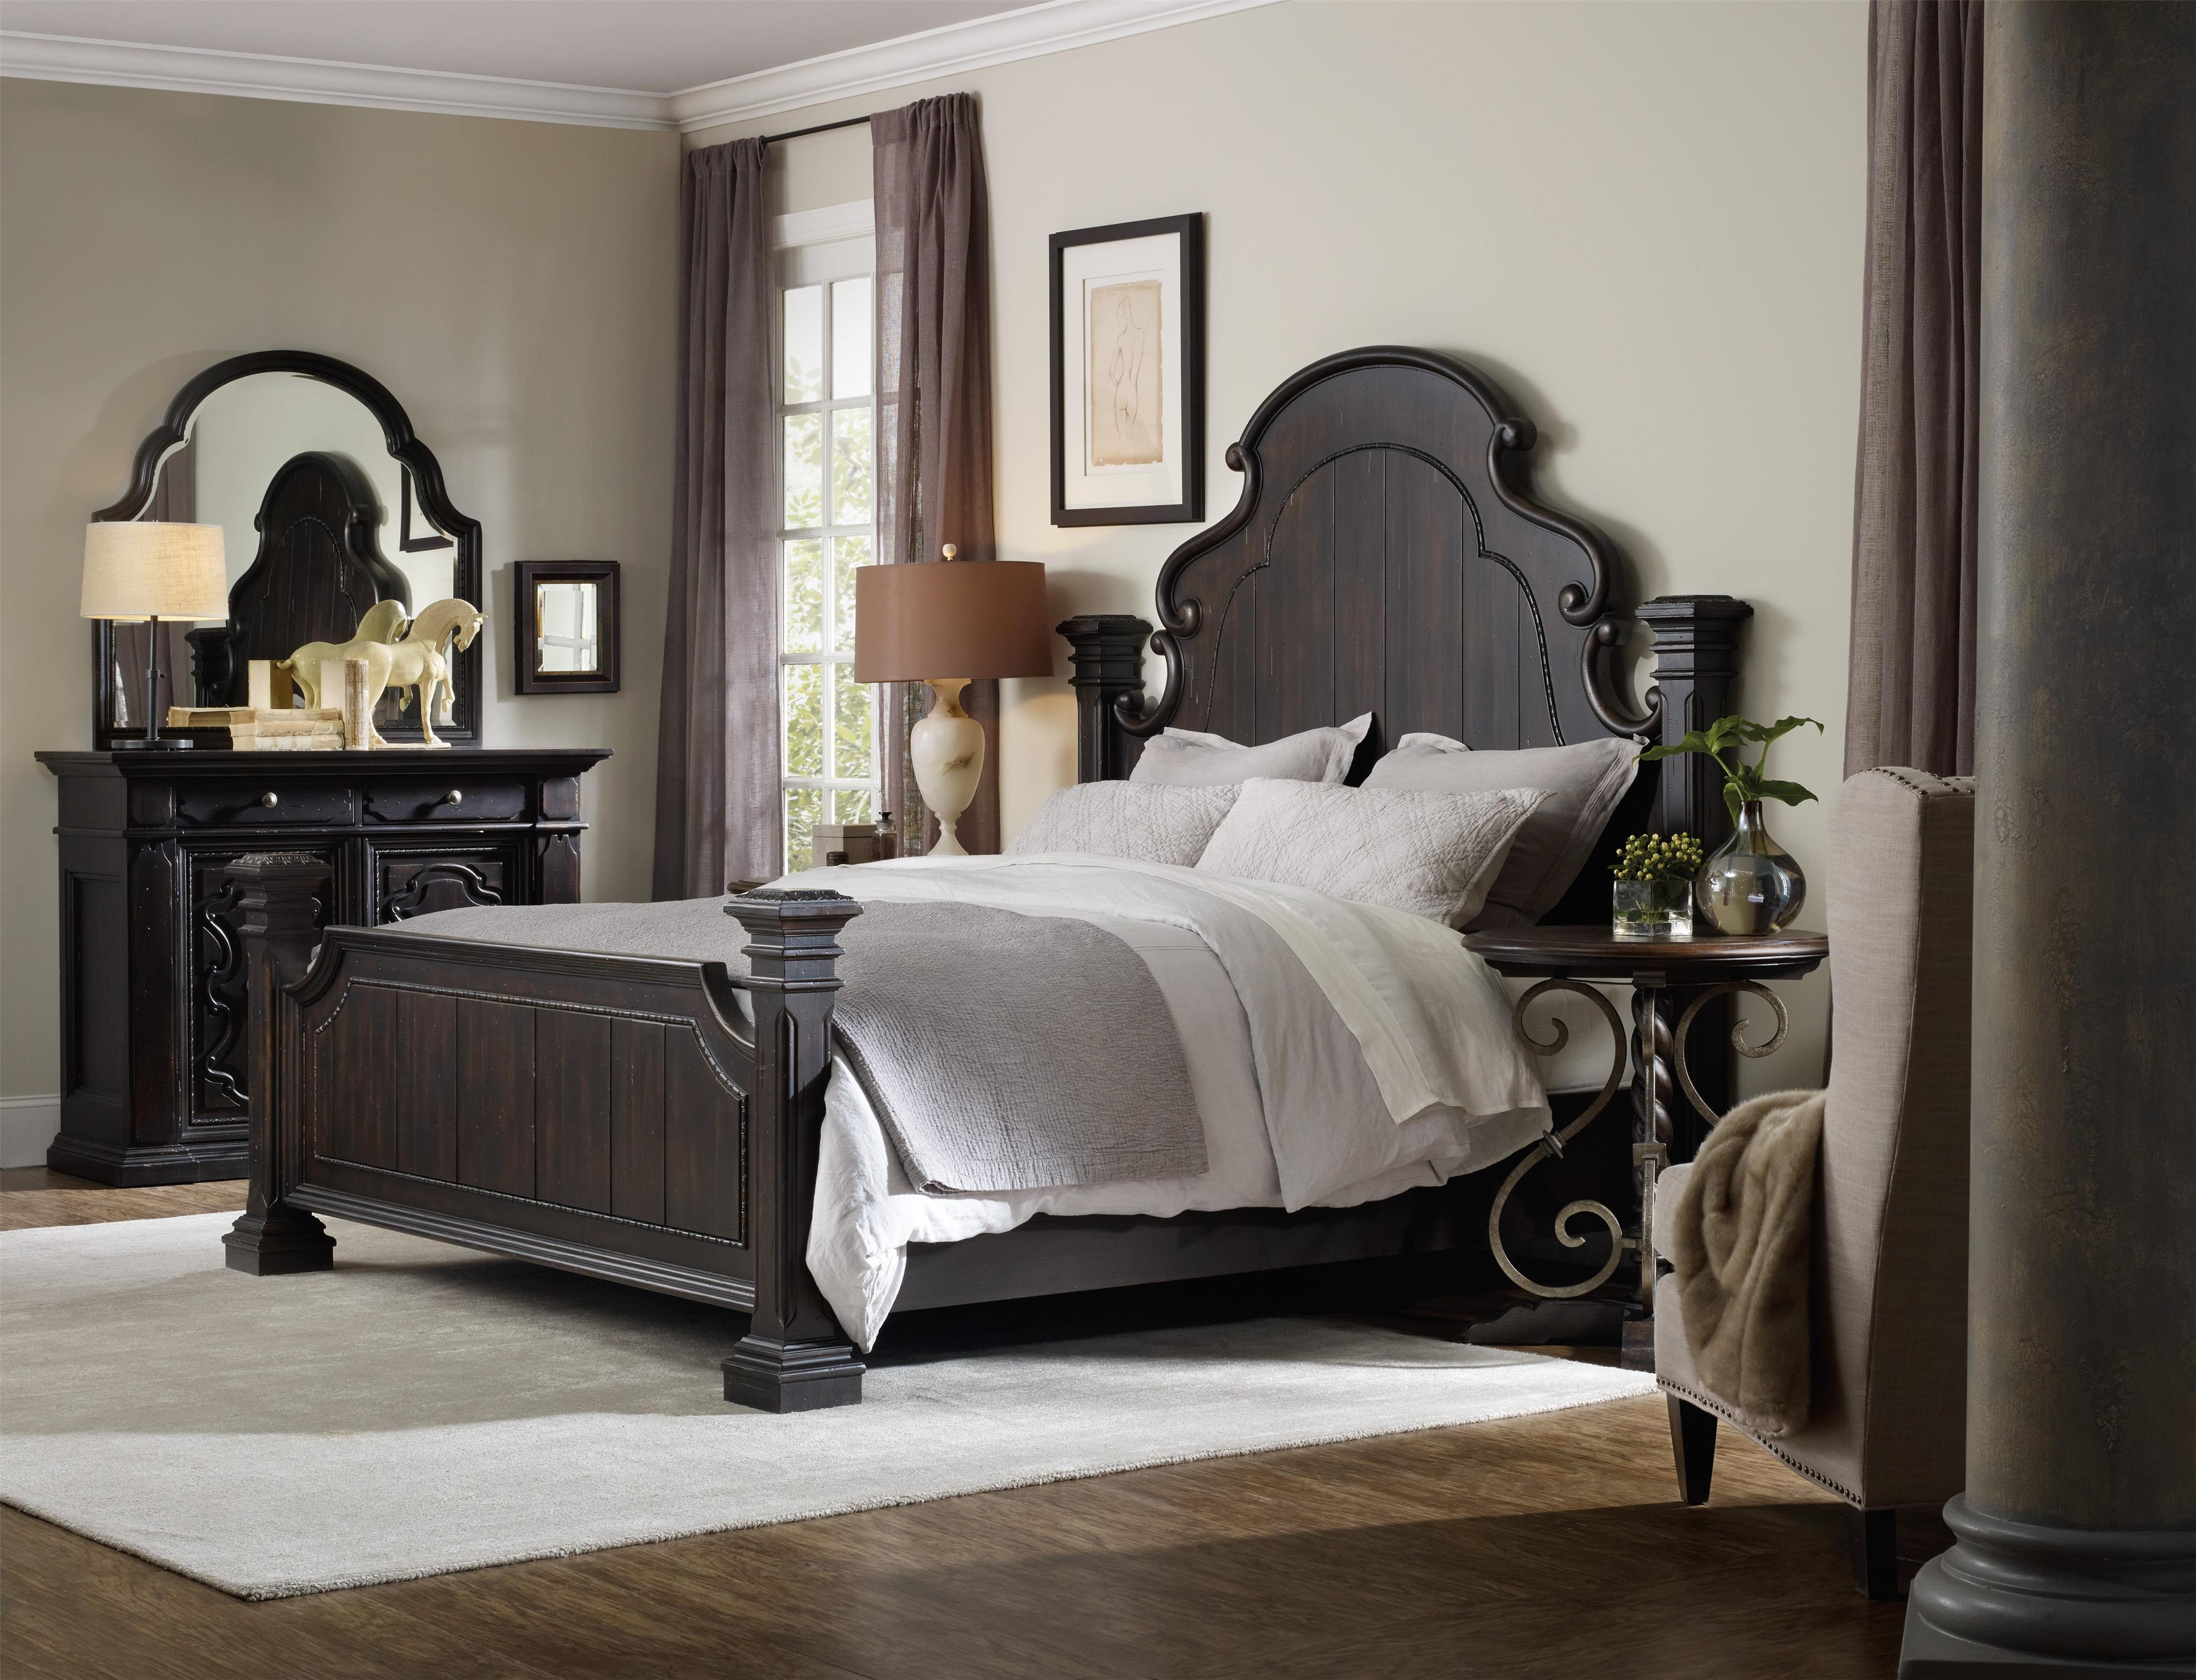 Hooker Furniture Treviso California King Bedroom Group - Item Number: 5374 CK Bedroom Group 3